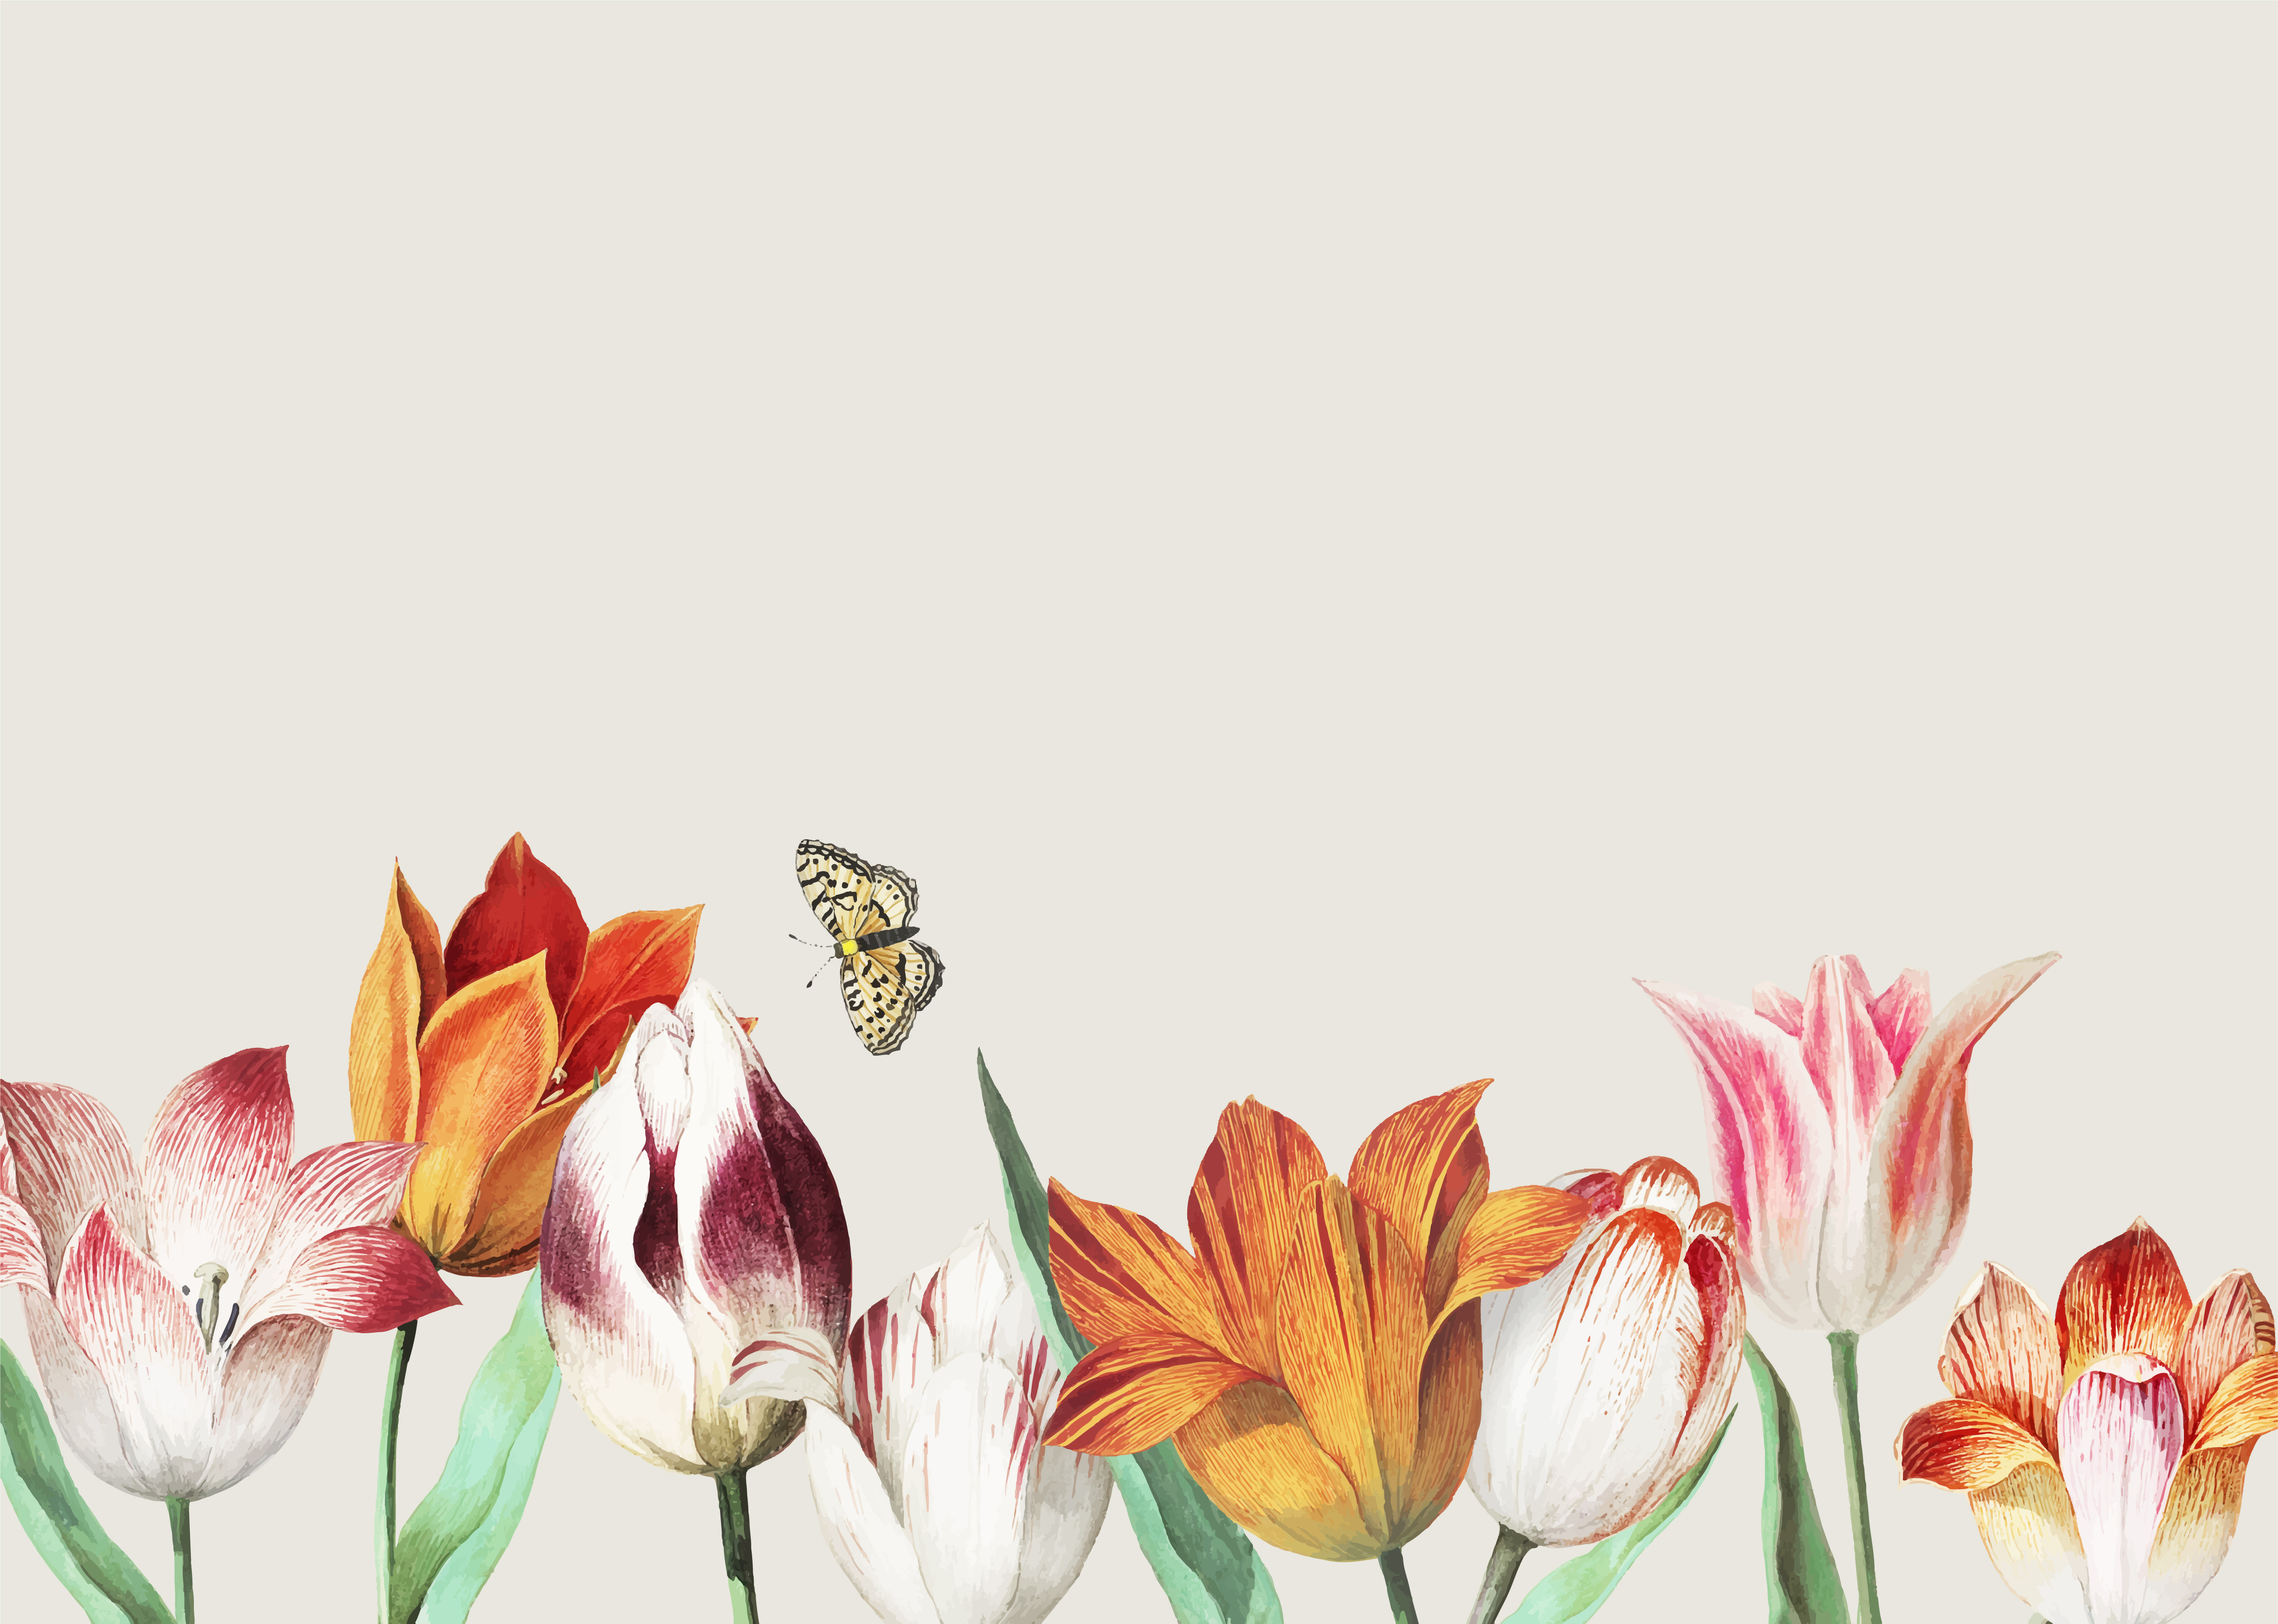 Tulip field border - Download Free Vectors, Clipart ...Tulips Page Borders Clipart Free